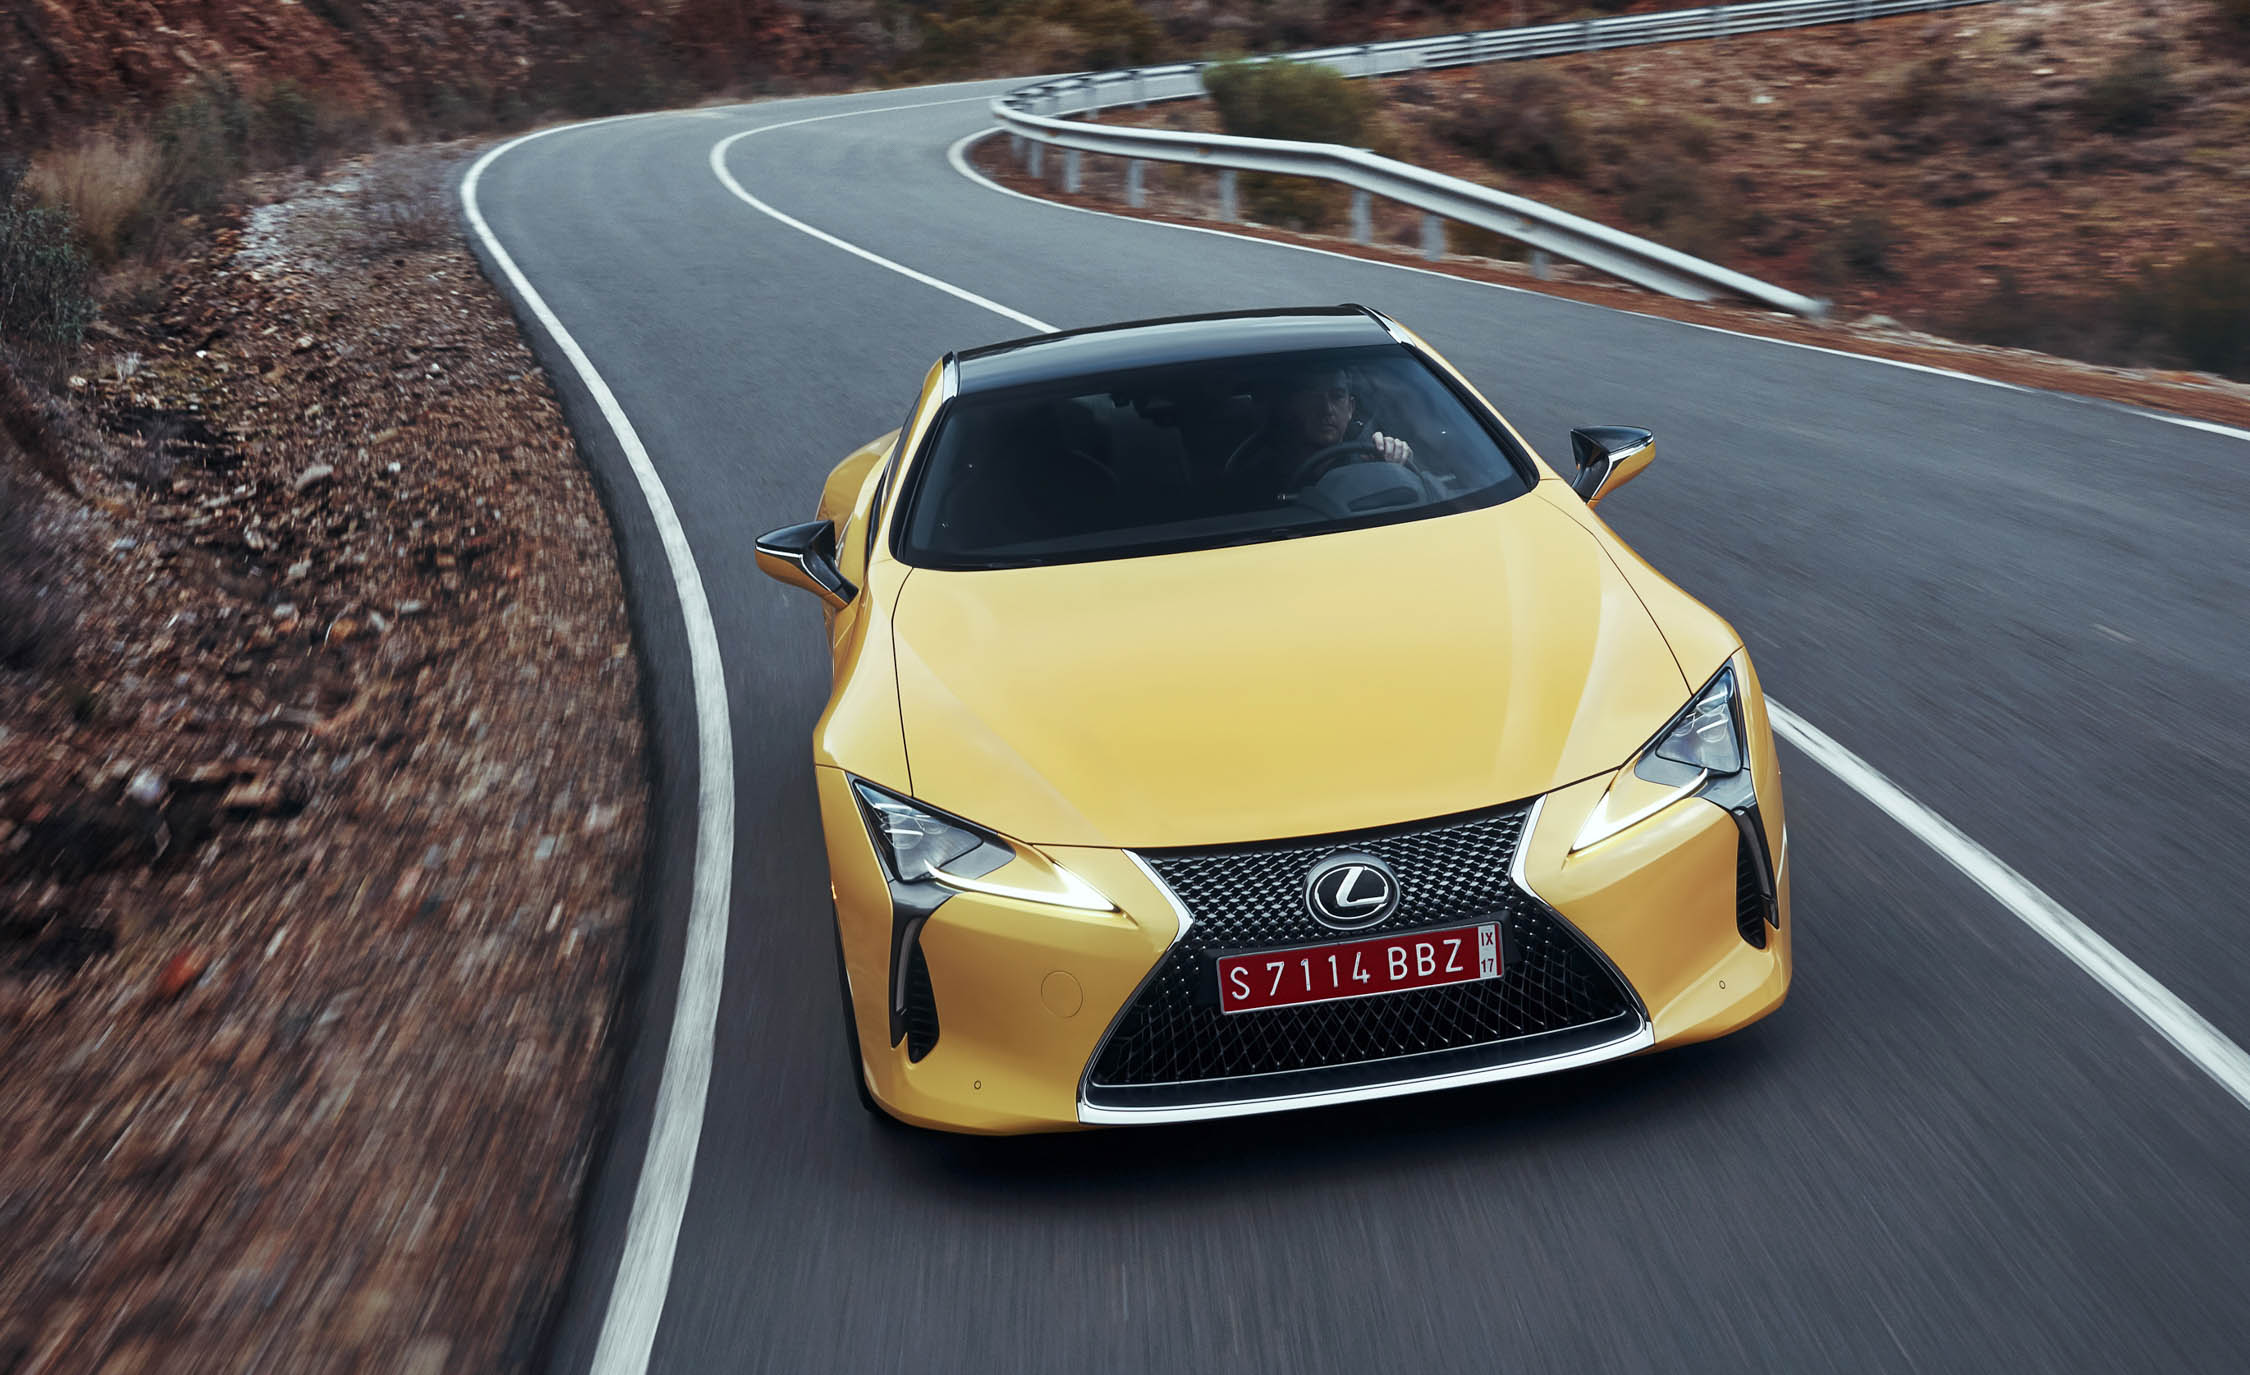 2018 Lexus Lc500 Yellow Test Drive Front View (Photo 73 of 84)